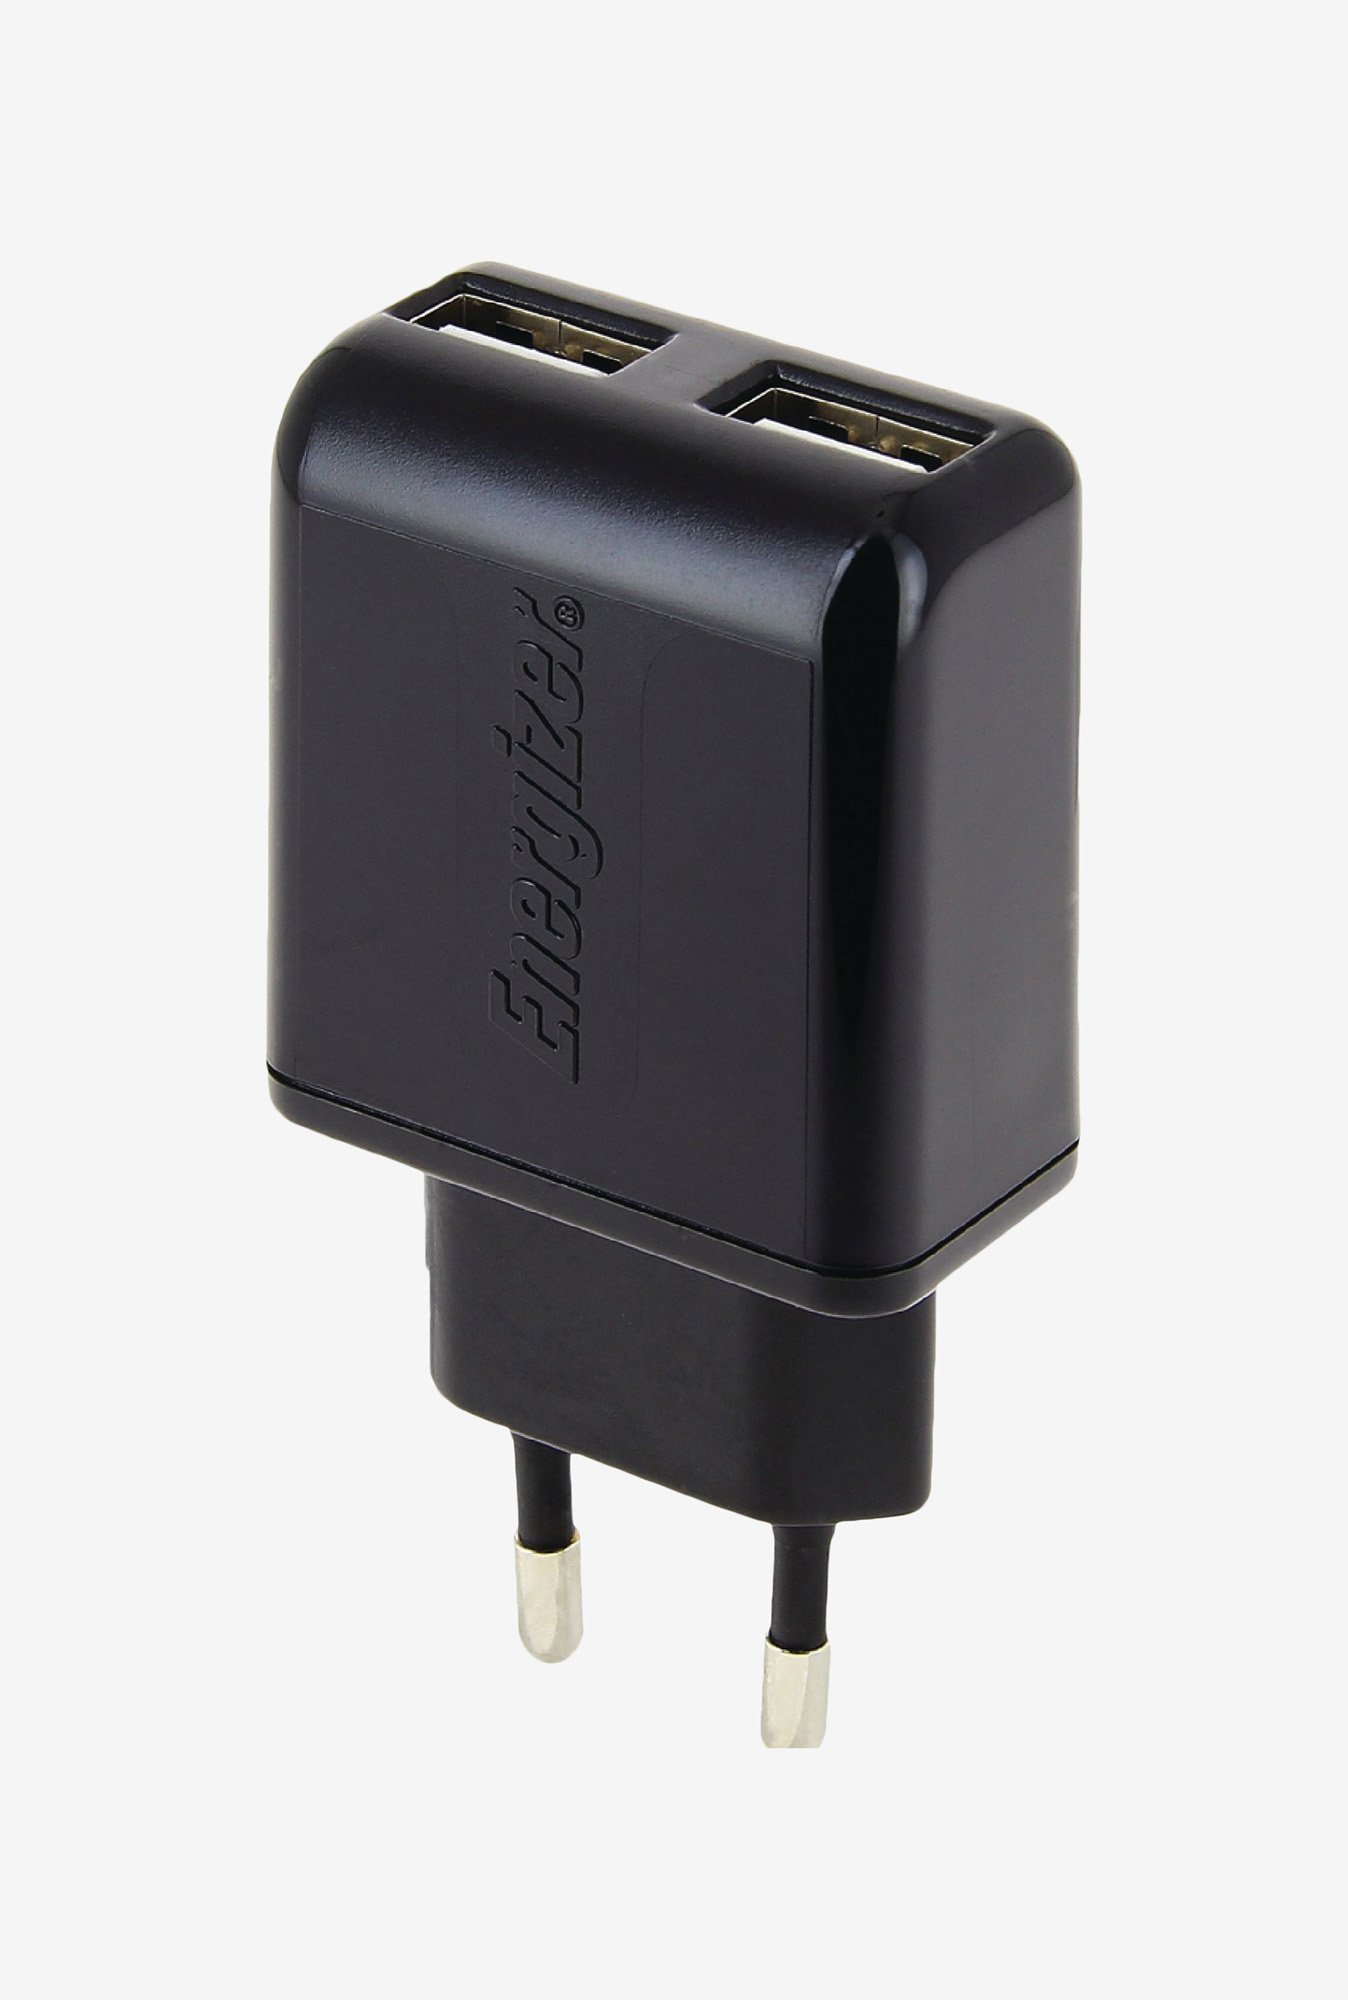 Energizer Classic 3in1 32UEUCNO2 Nokia Adapter Black